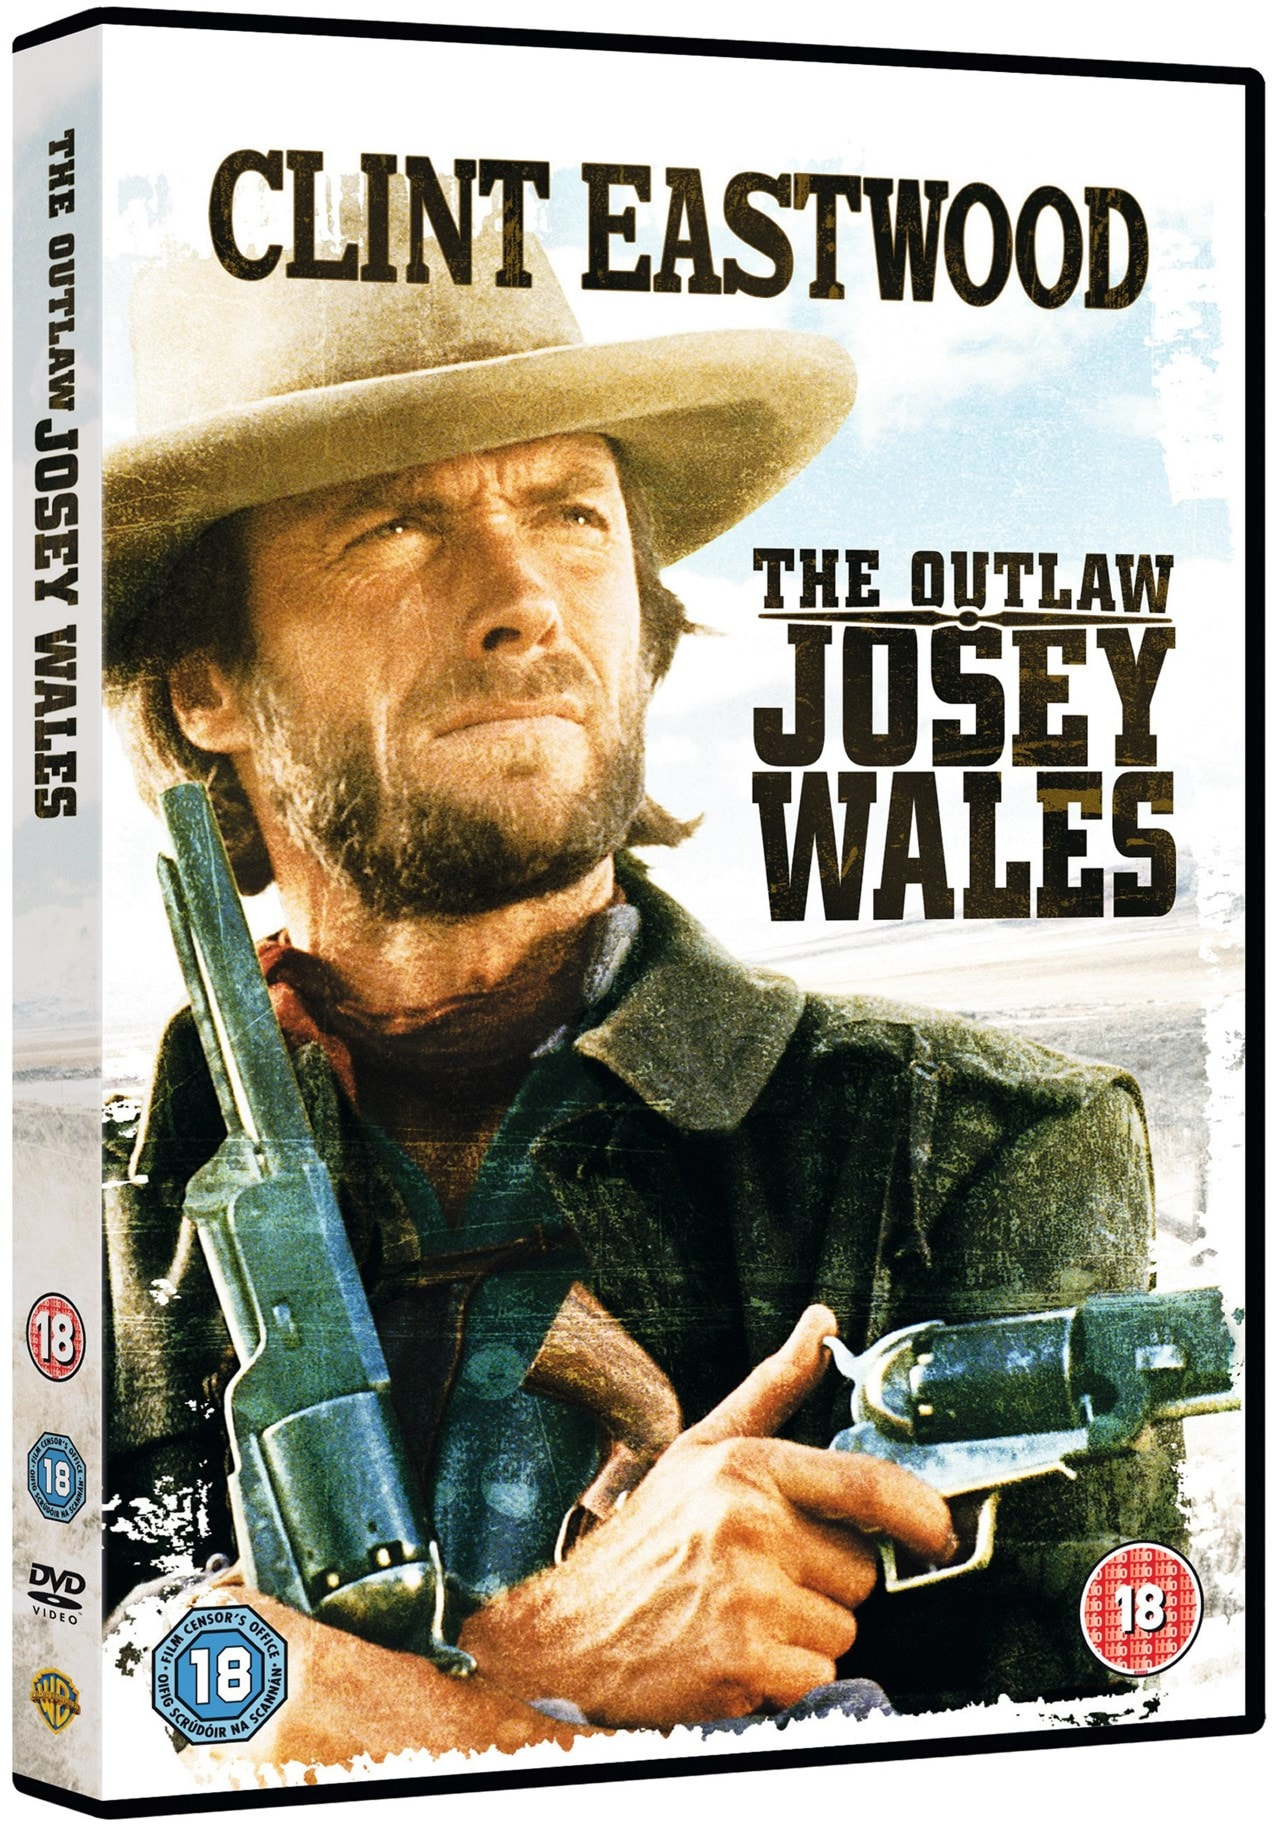 The Outlaw Josey Wales - 2